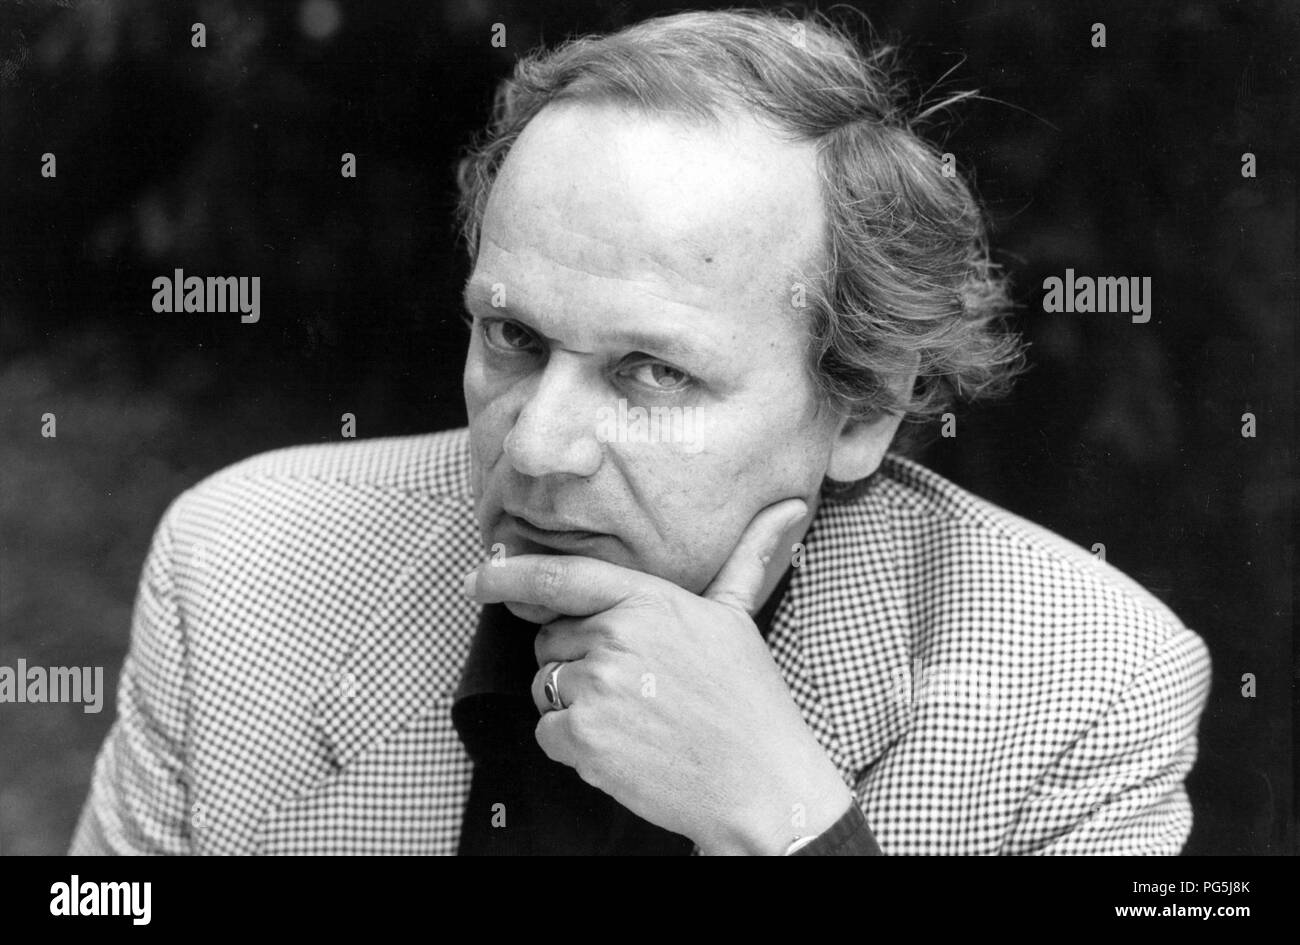 Joachim Sartorius (born 1946), German lawyer and author, general secretary since October 1996, the Goethe-Institut eV in Munich. - Stock Image